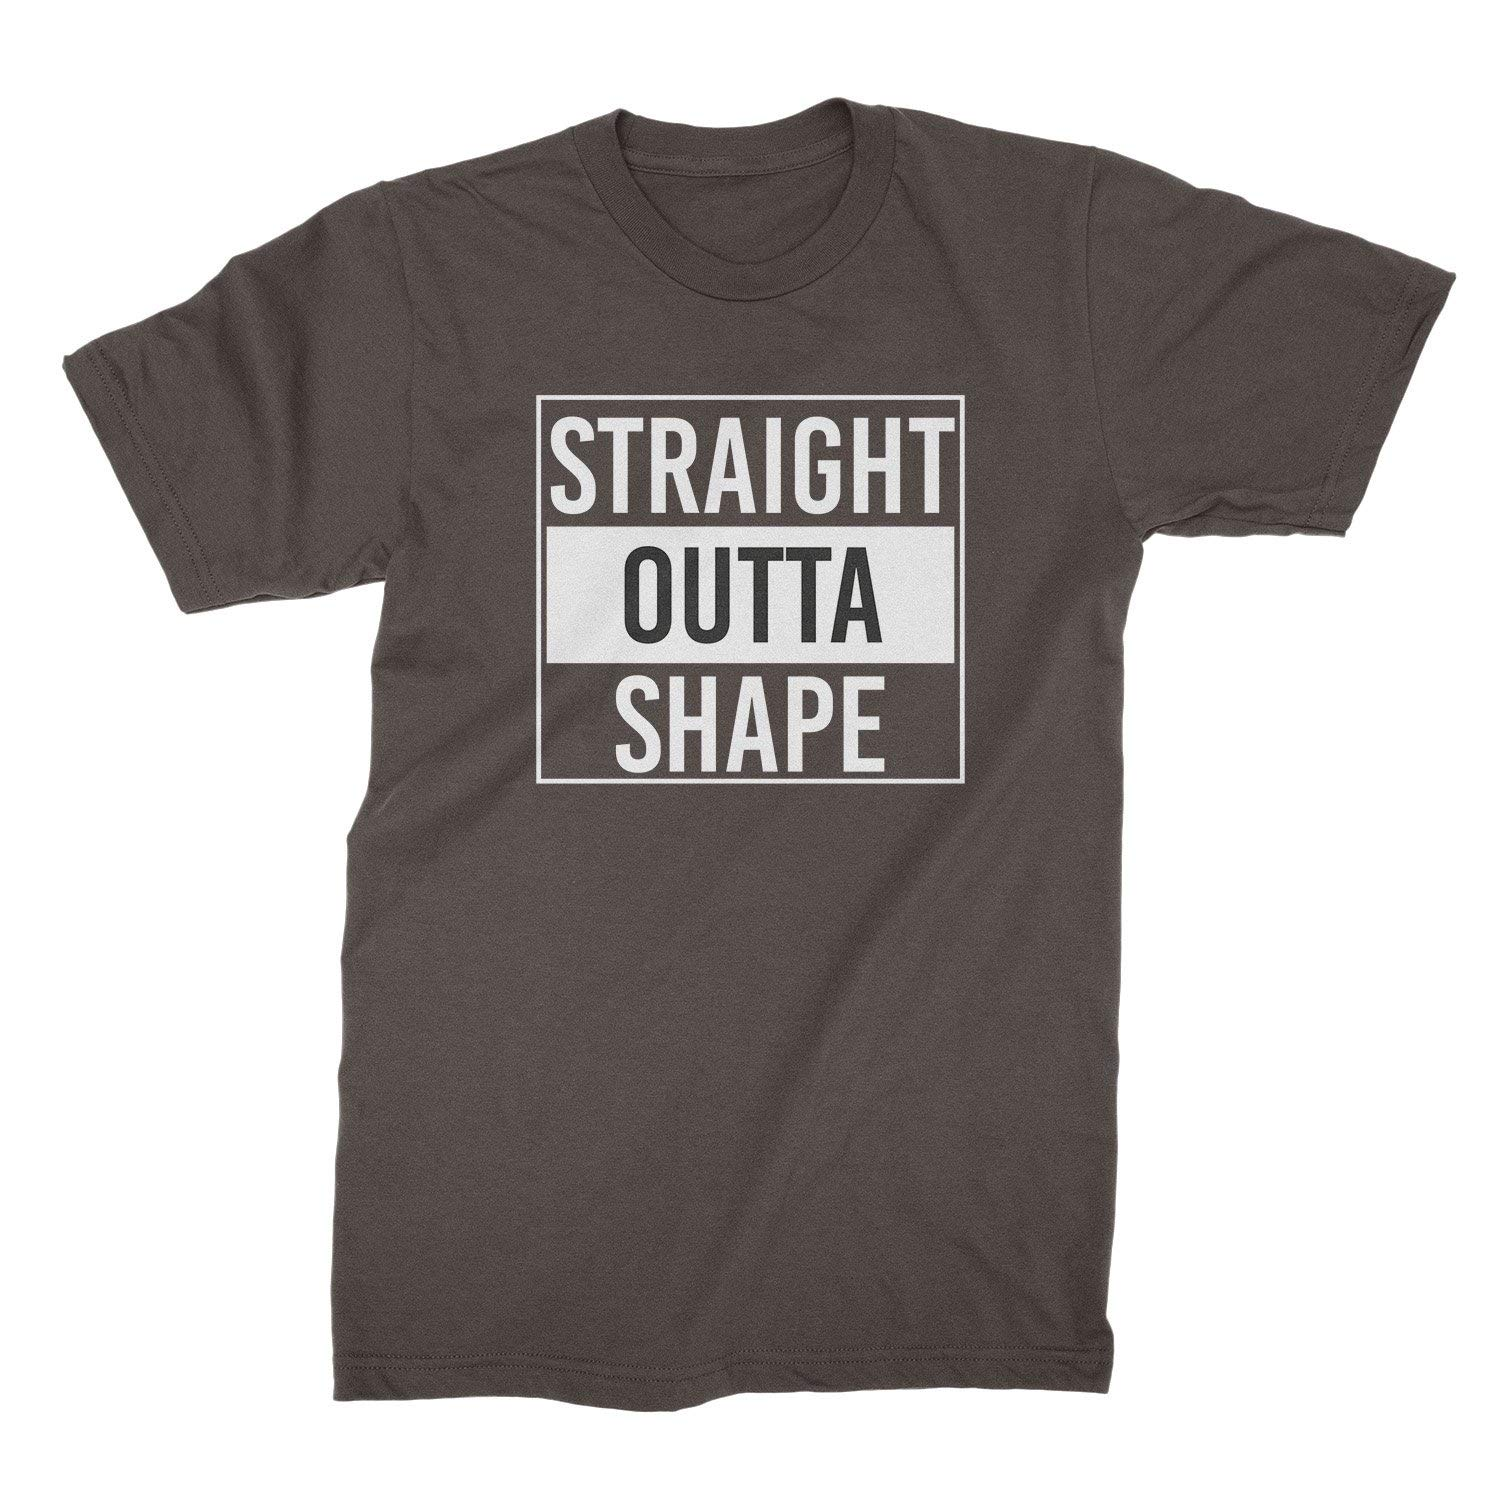 We Got Good Straight Outta Shape T Shirt Out Of Shape Tshirt Funny Gym Shirts With Sayings